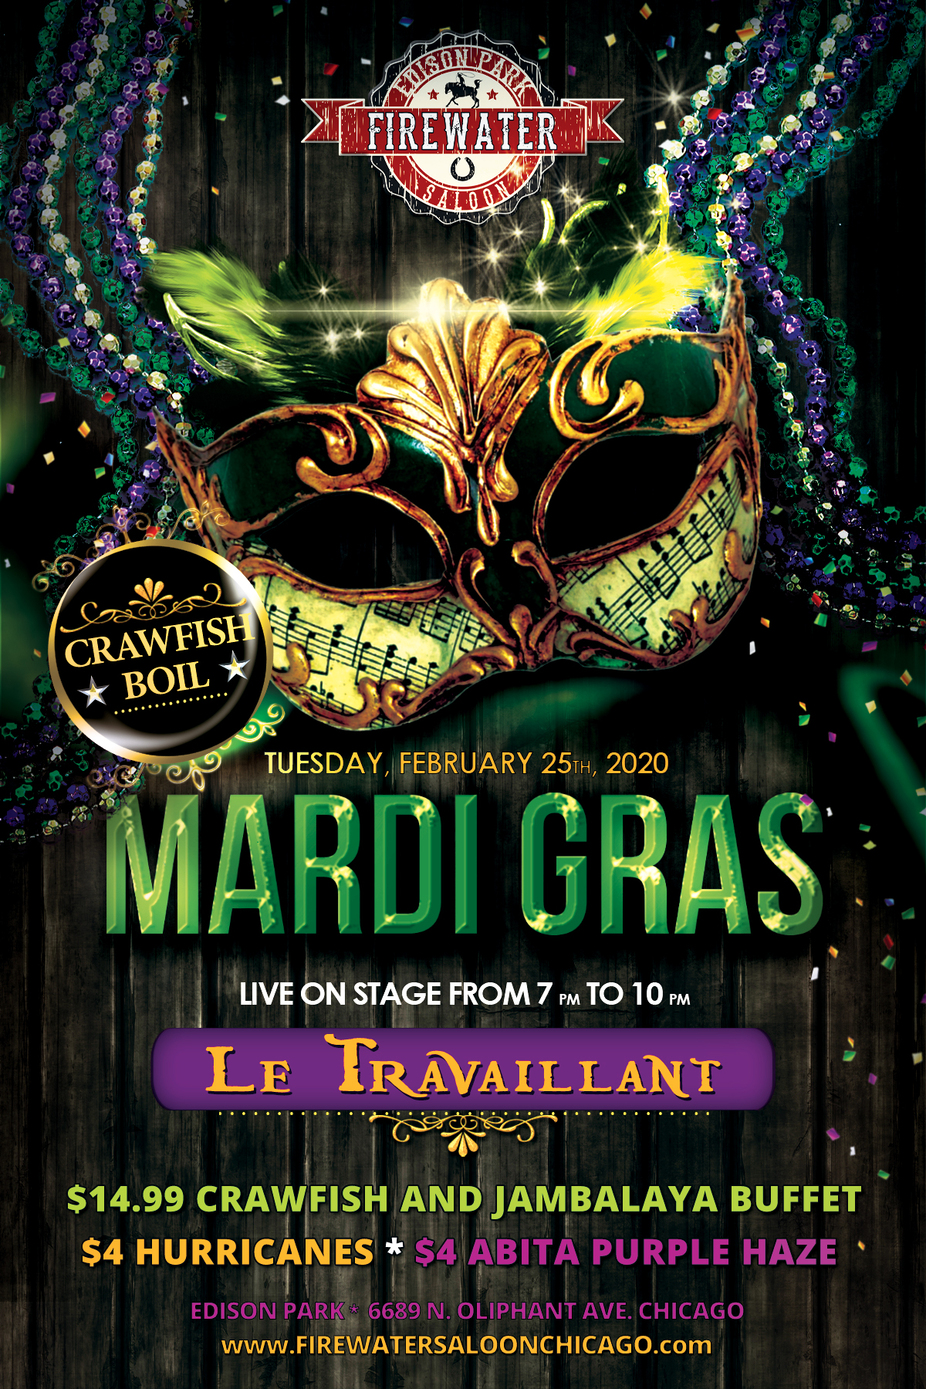 Mardi Gras event photo